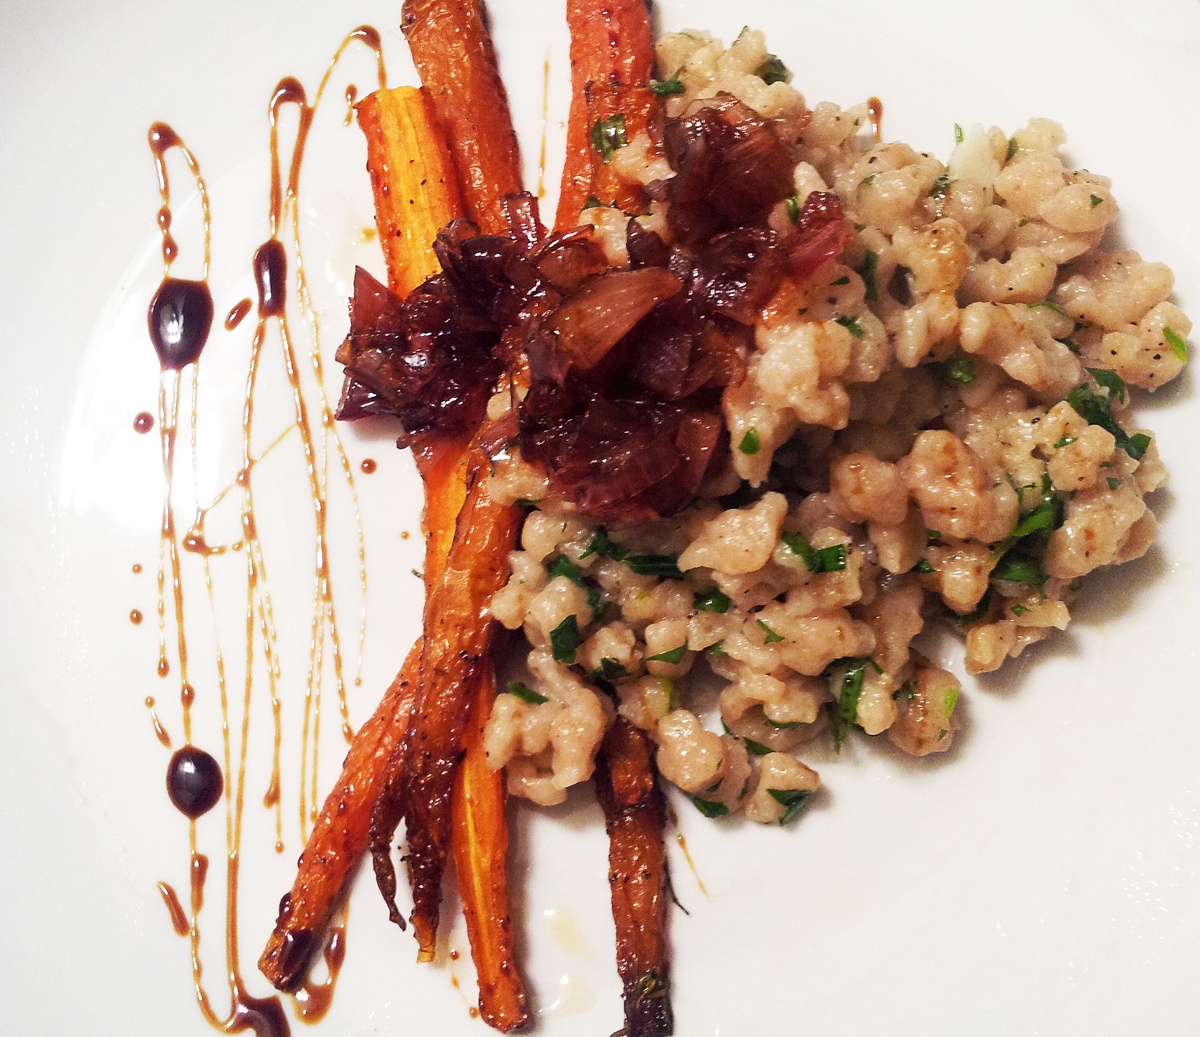 ... Hatred of Meat: Herb Spaetzle with Shallot Marmalade & Roasted Carrots